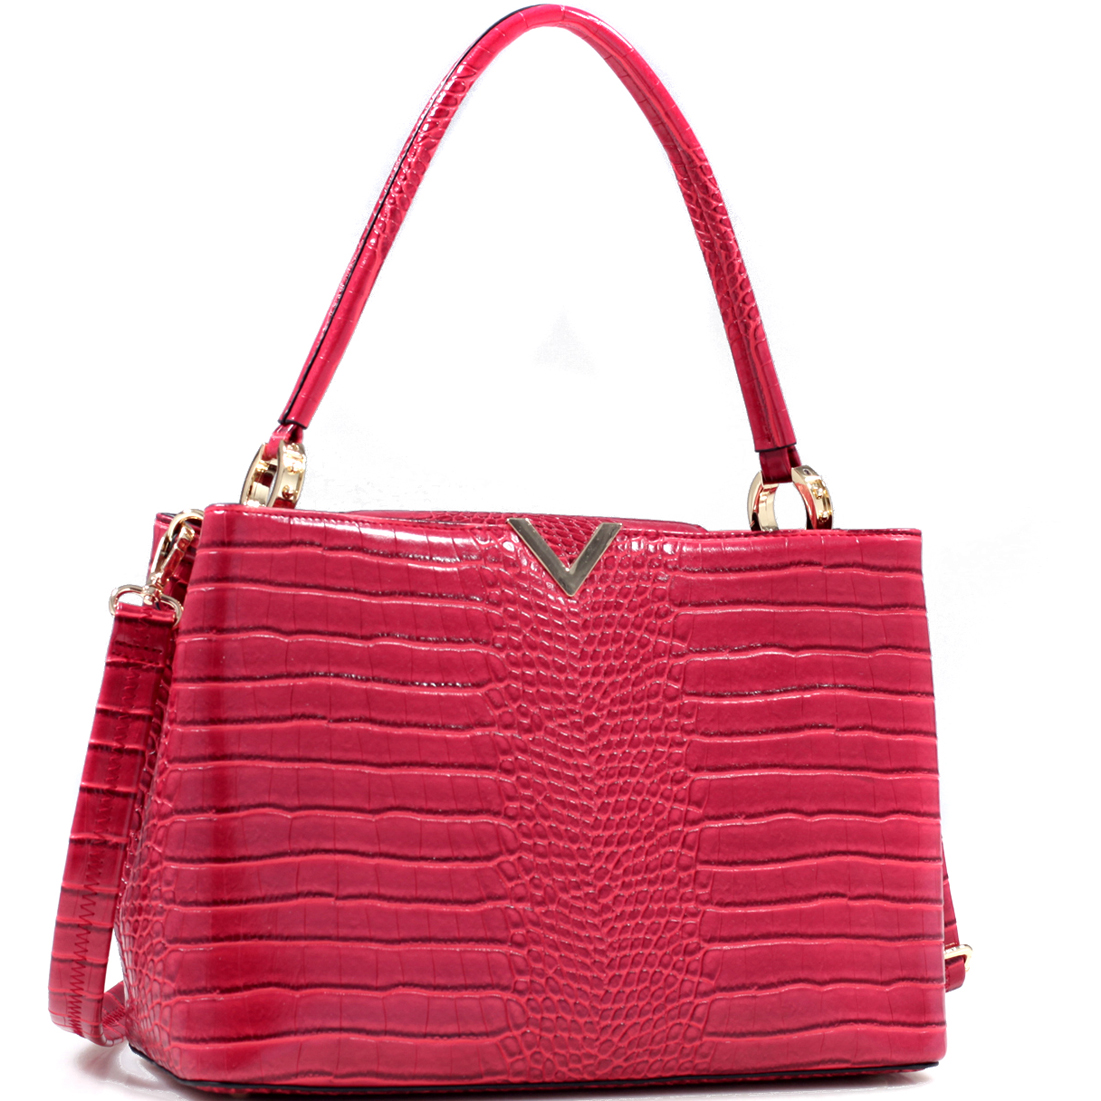 Croc Embossed V Emblem Shoulder Bag w/Removable Shoulder Strap